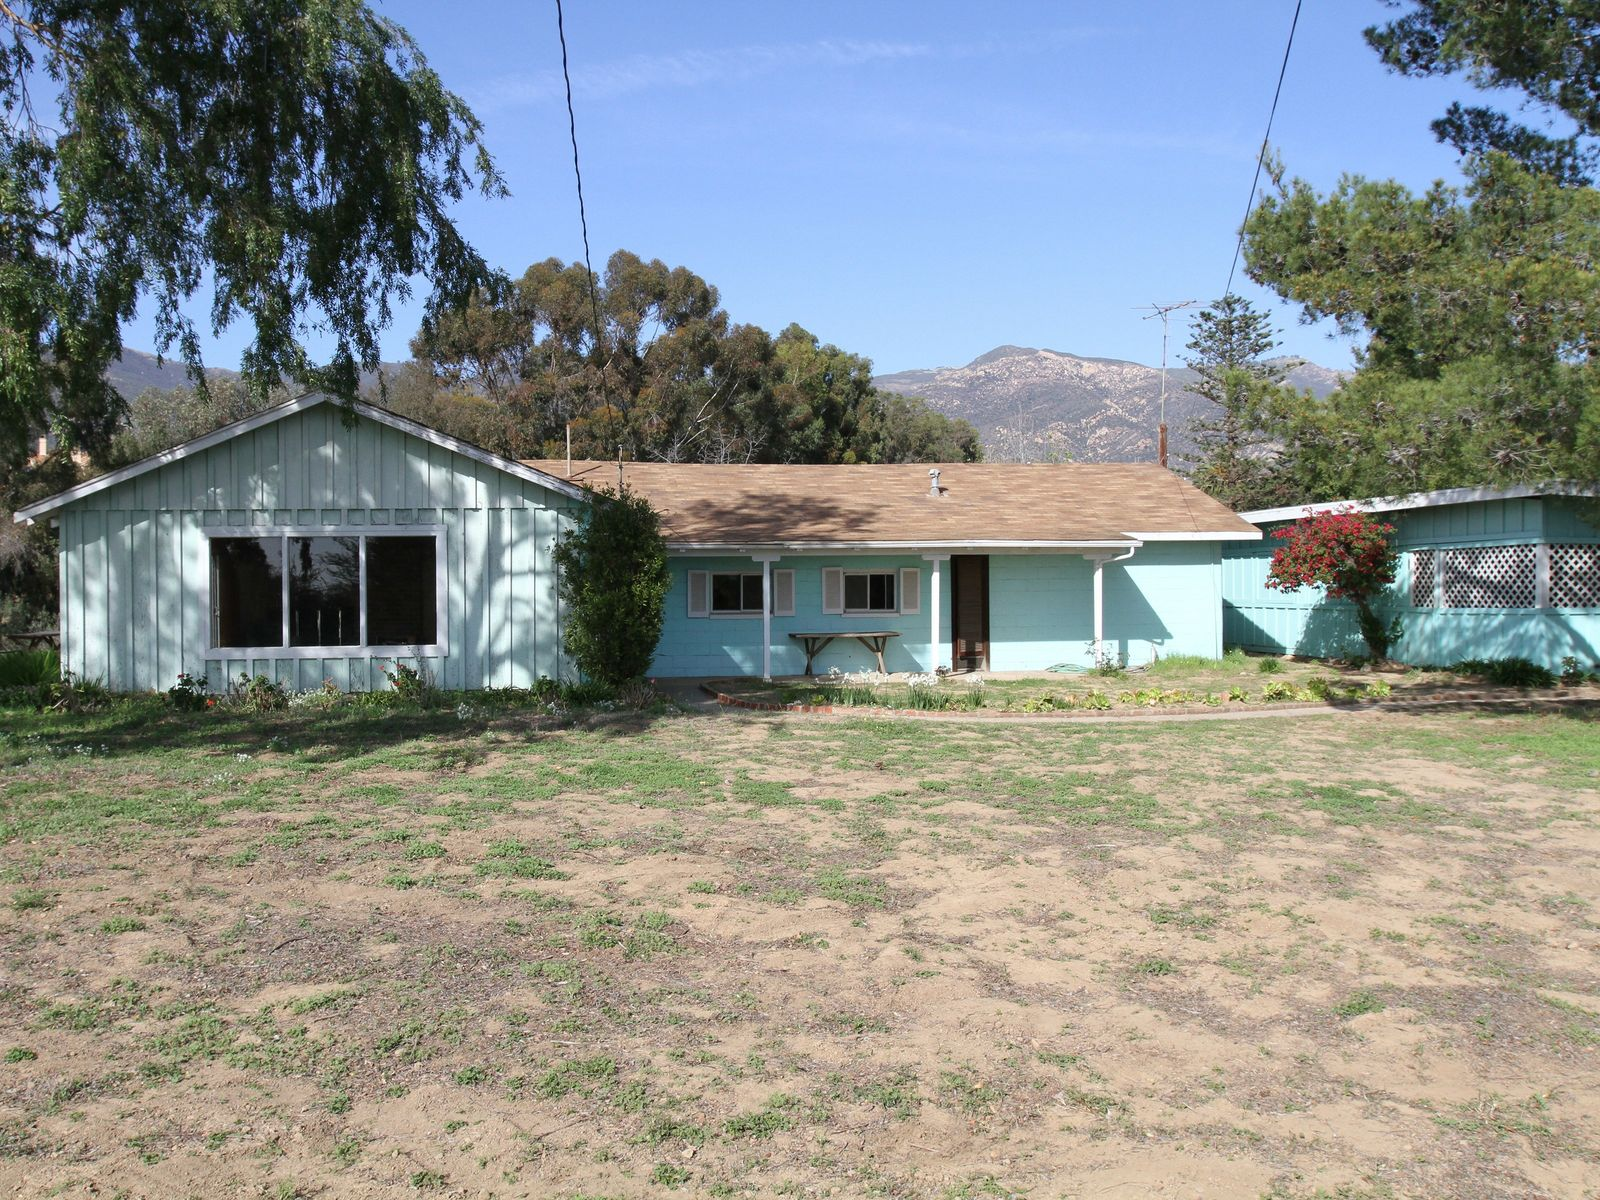 Ocean View on Approximately One Acre, Santa Barbara CA Single Family Home - Santa Barbara Real Estate